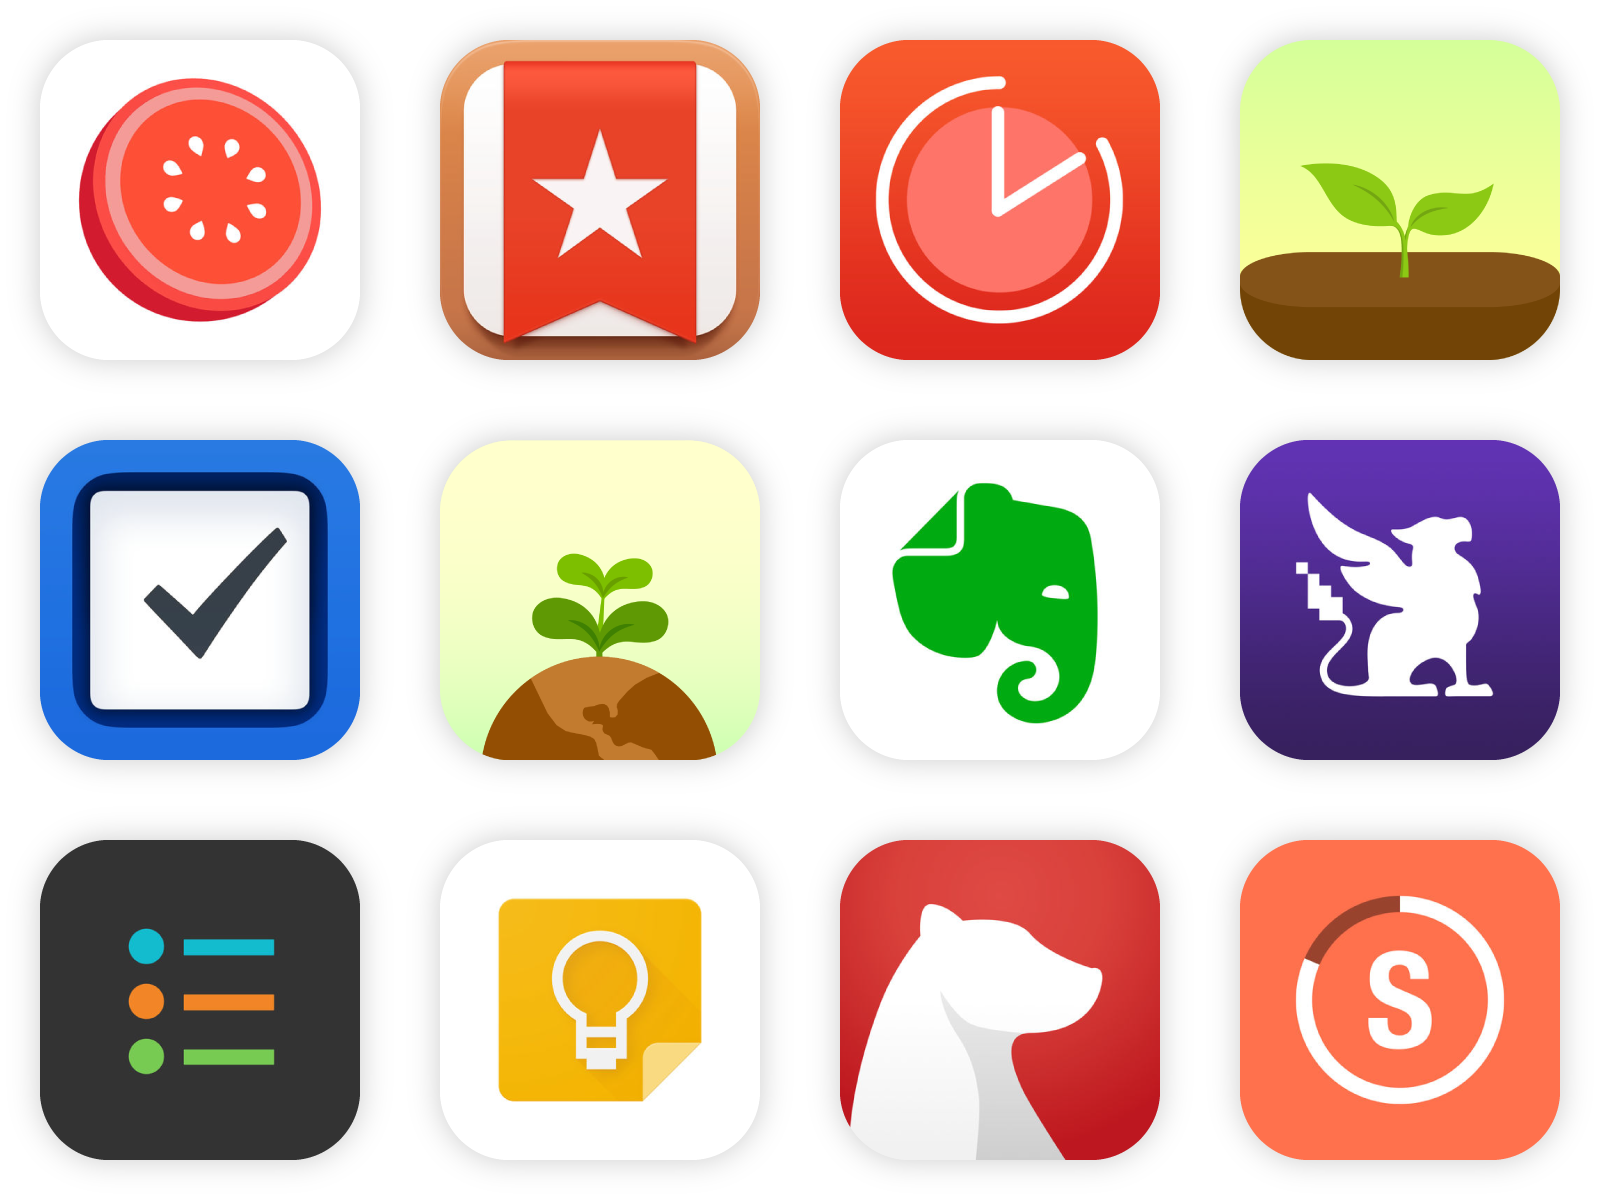 Best Productivity Apps For 2019 Part 1 Pomodoro Focus Timers By Kalie Allebach Medium